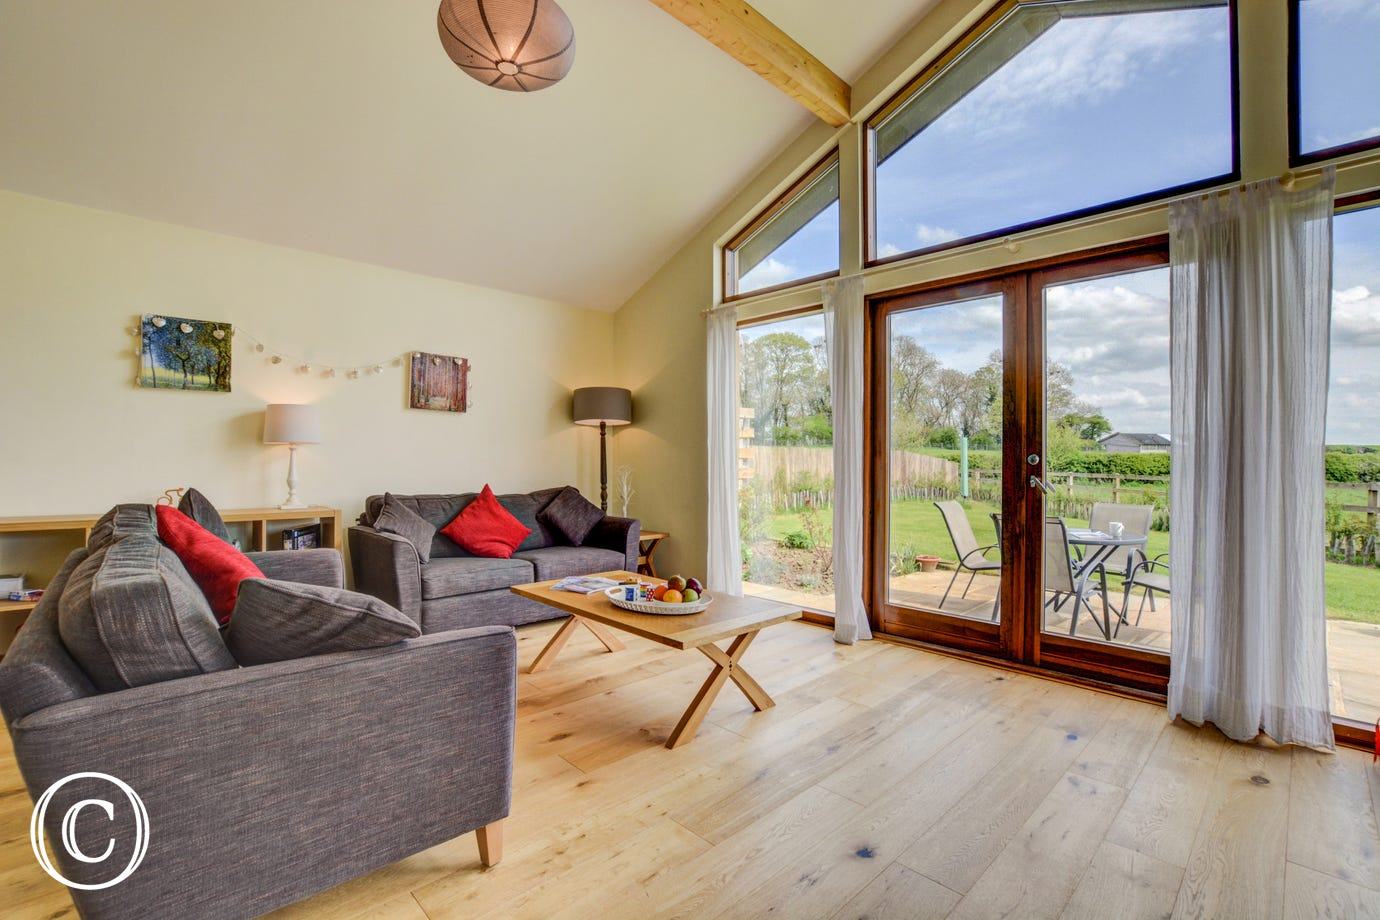 The spacious open plan living area with french windows leading onto the garden, views over the stunning countryside